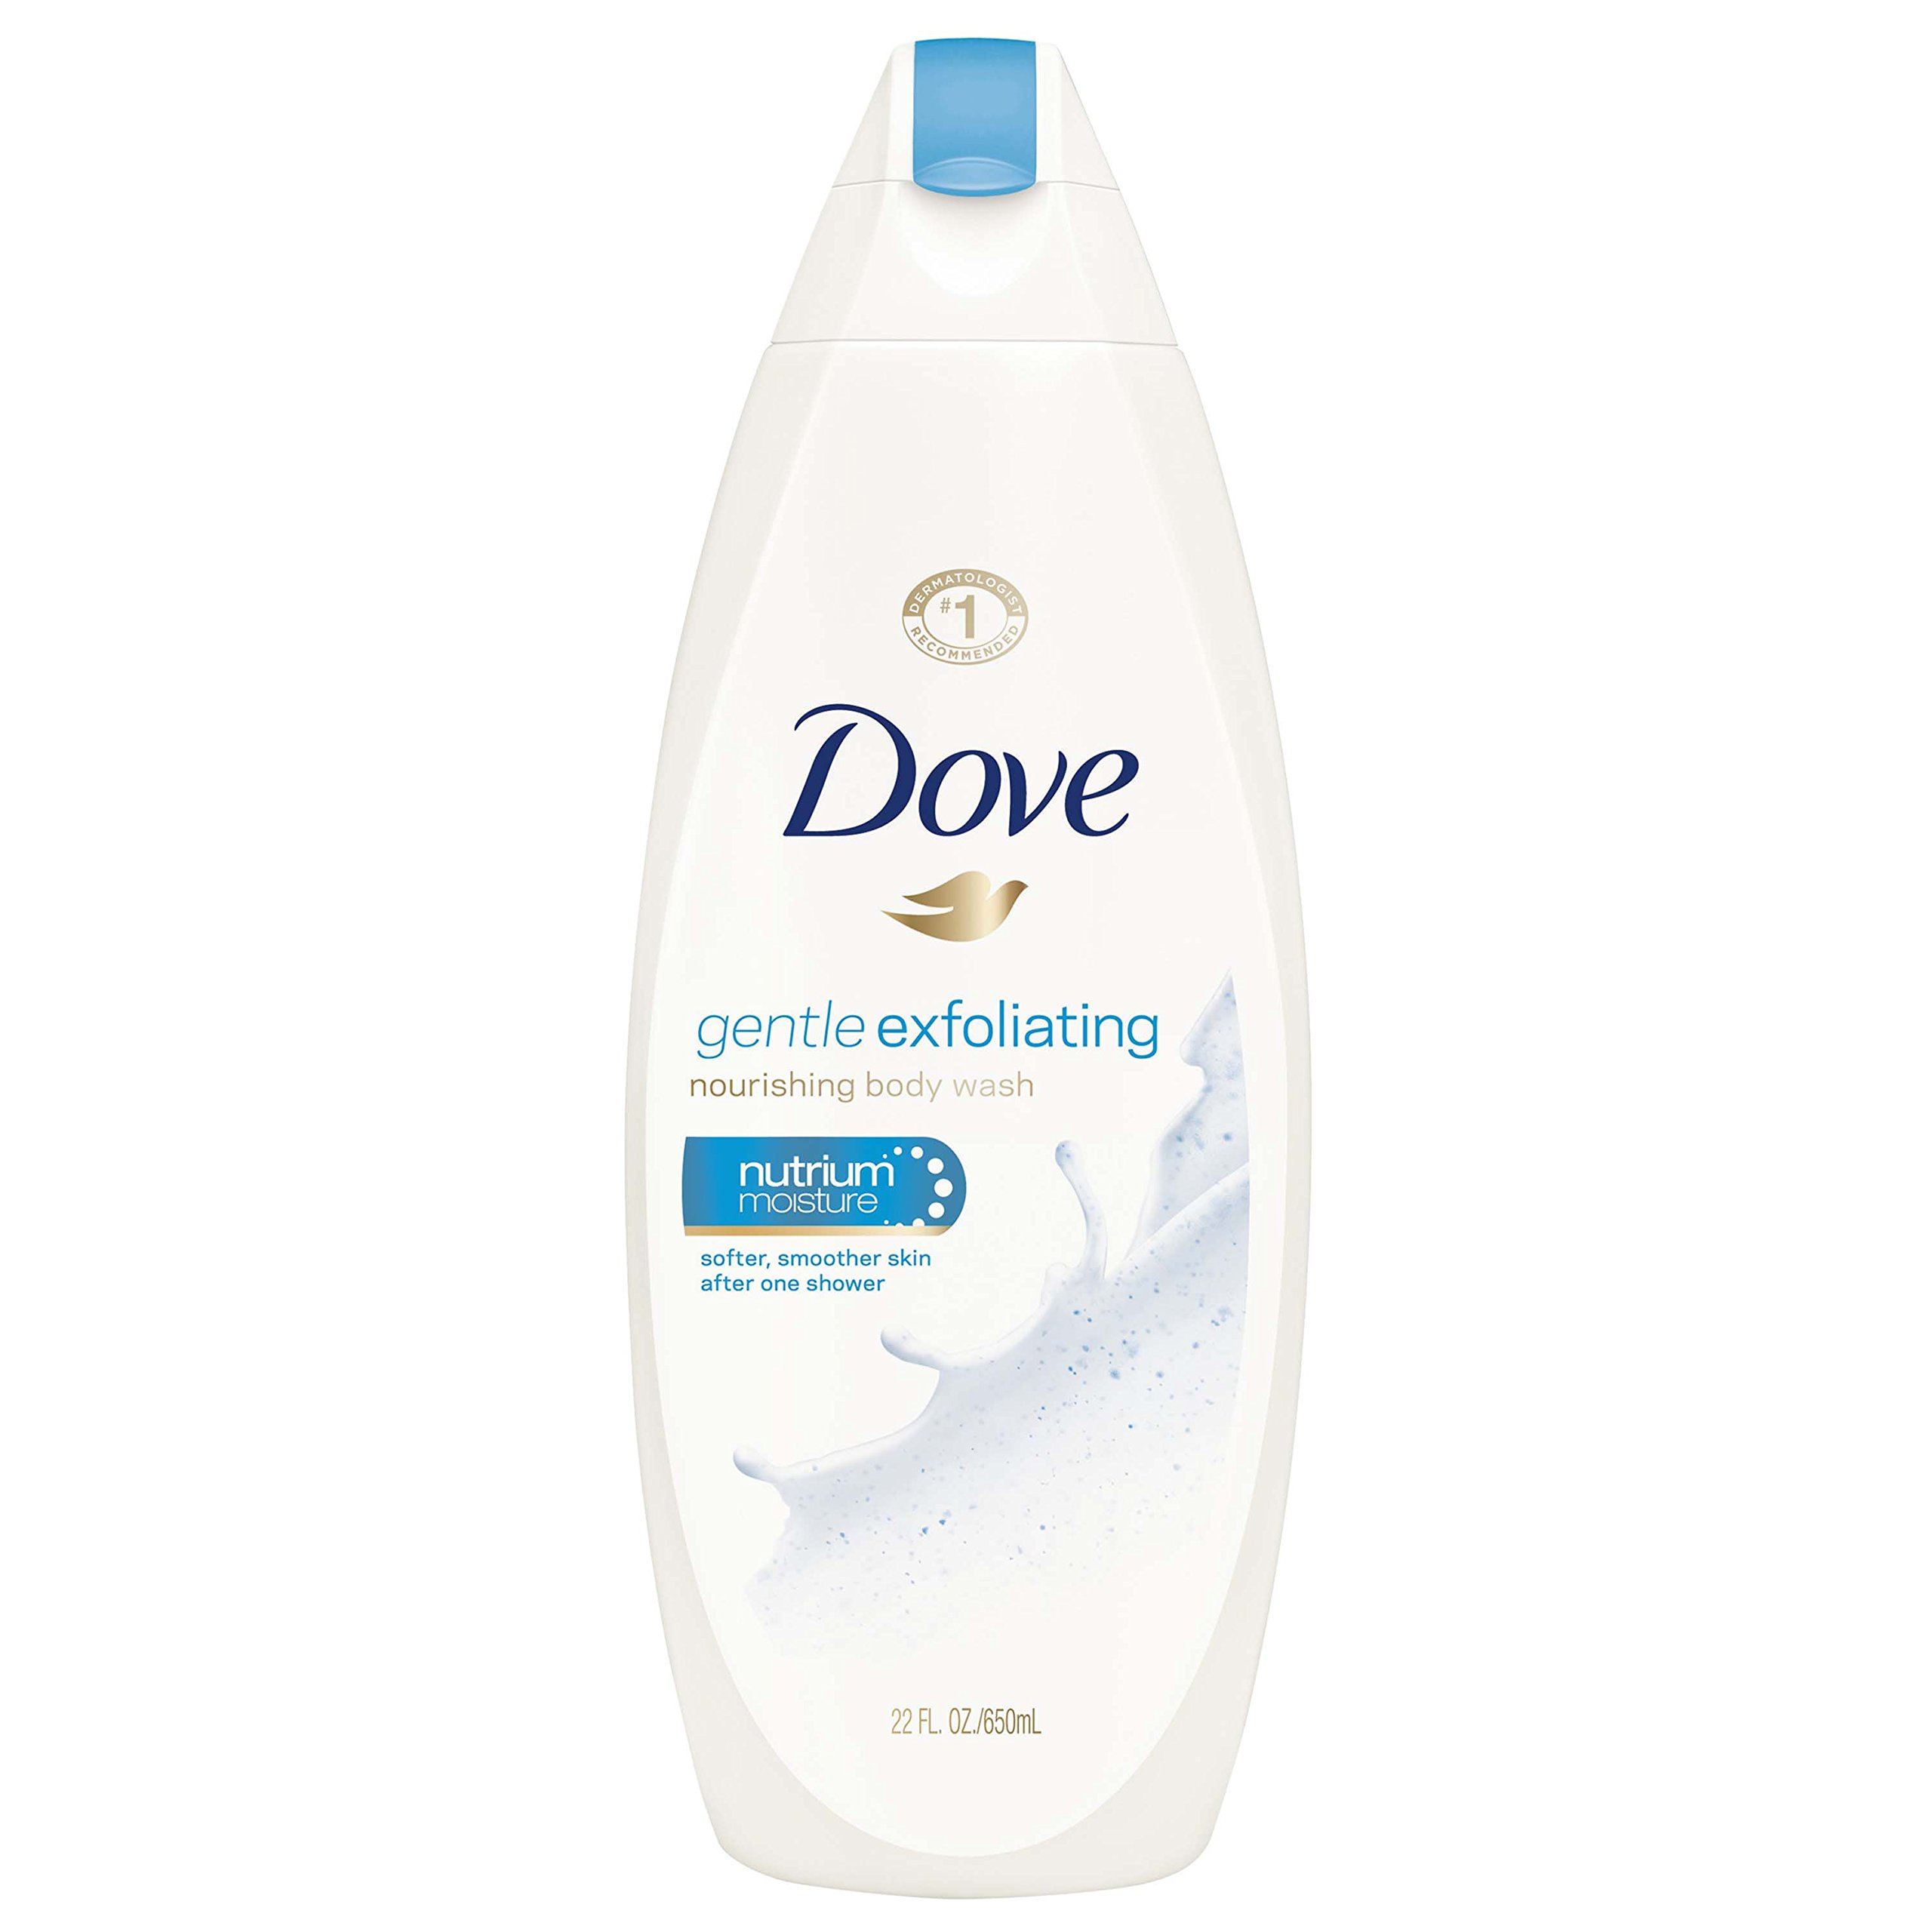 Dove Body Wash, Gentle Exfoliating 22 oz, 4 Count by Dove (Image #4)